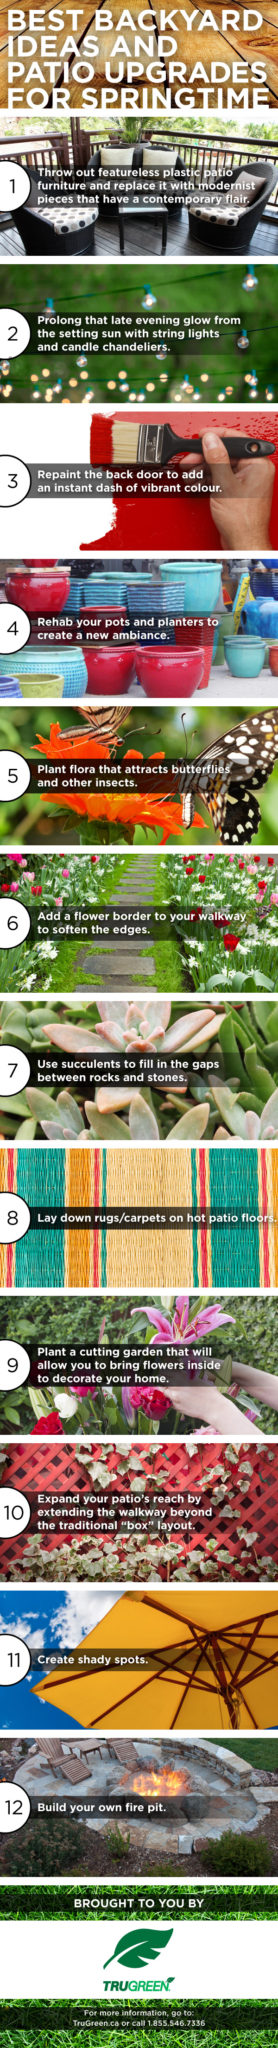 Simple Ways To Brighten Up Your Backyard This Spring